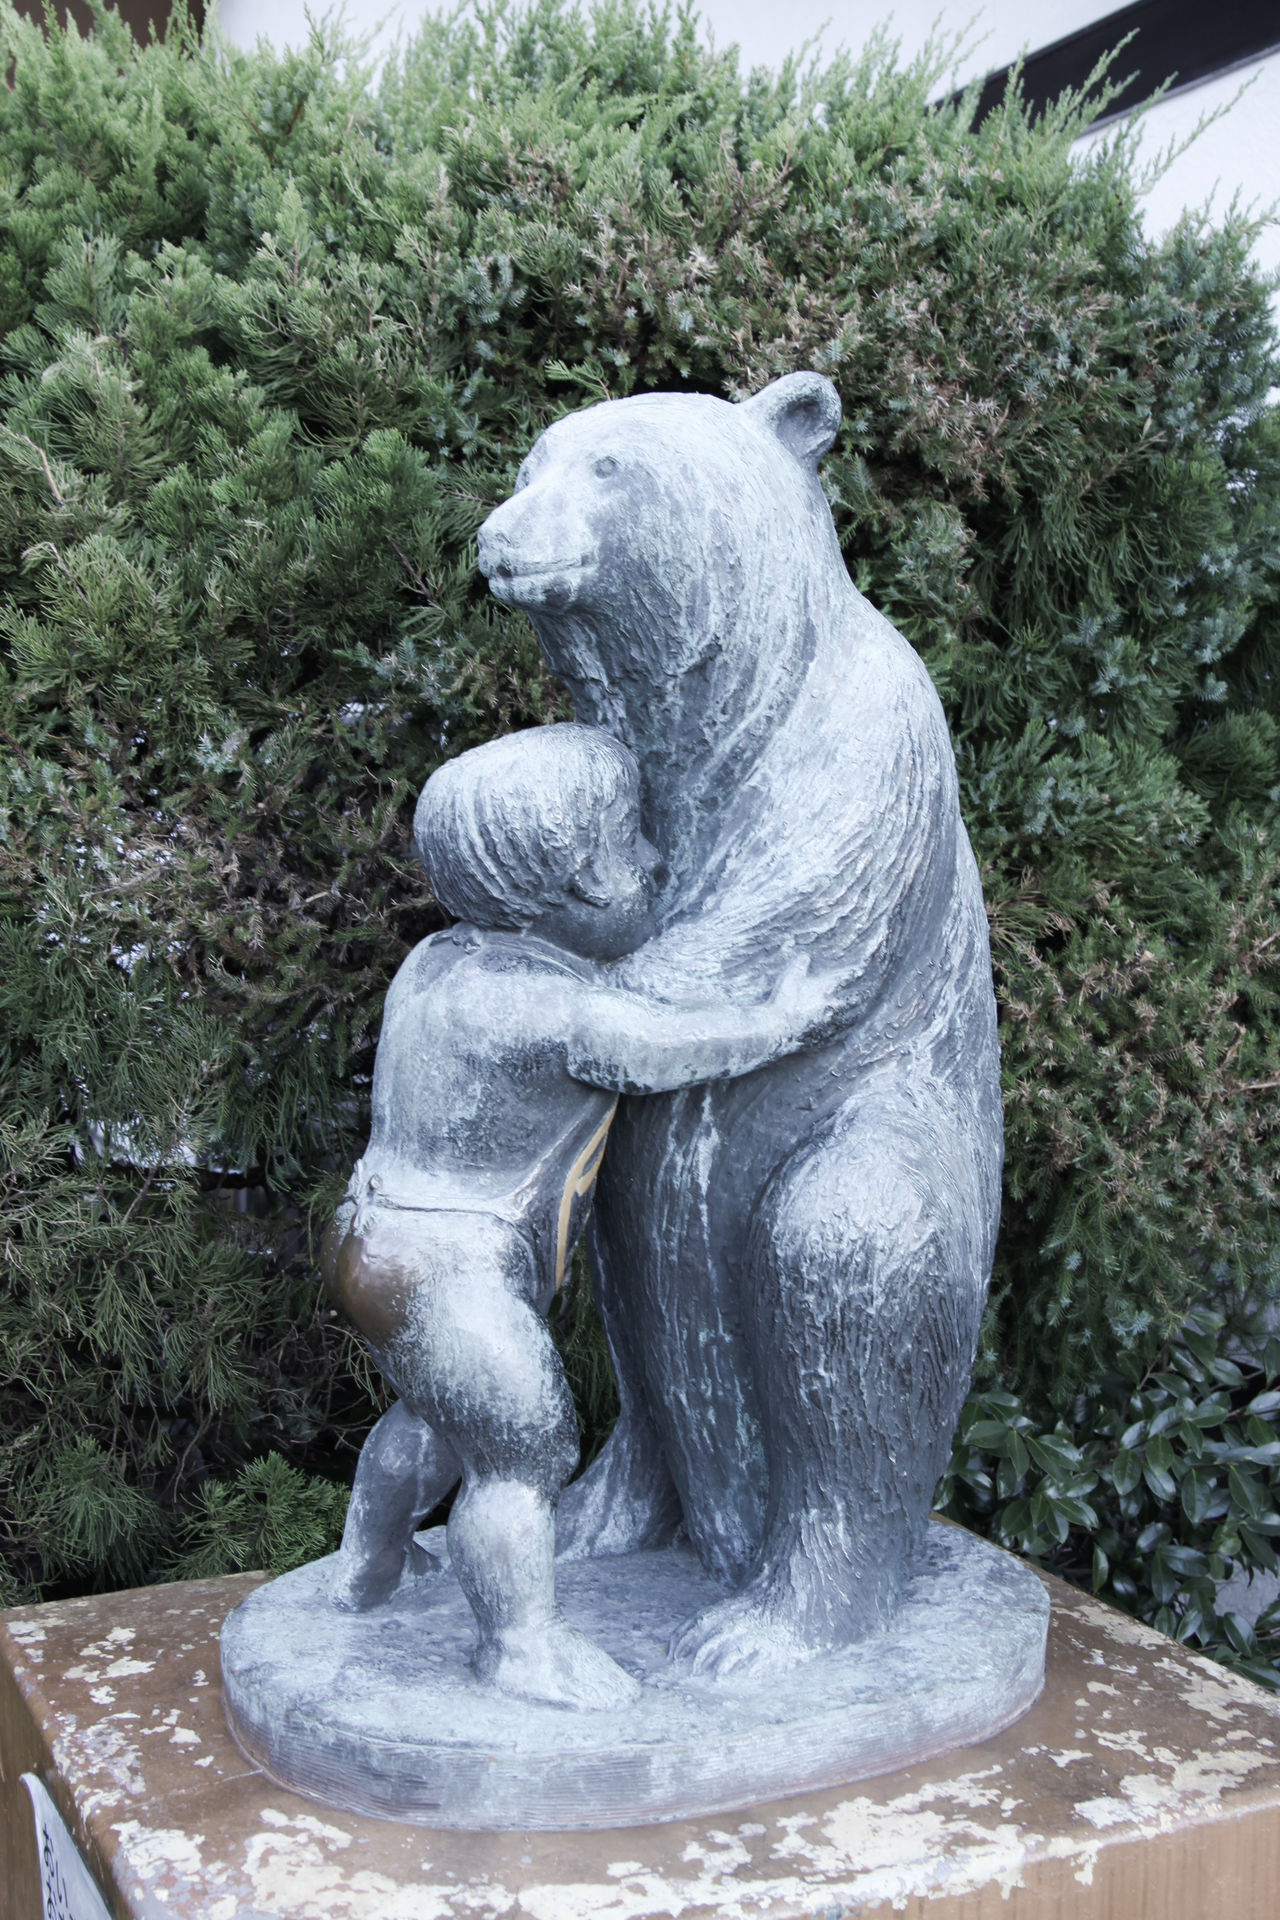 Wrestling with a bear AArt And Craft dDay hHuman Representation JJapan JJapan Photography NNature nNo People oOutdoors sSculpted sSculpture SStatue 3XSPUnity